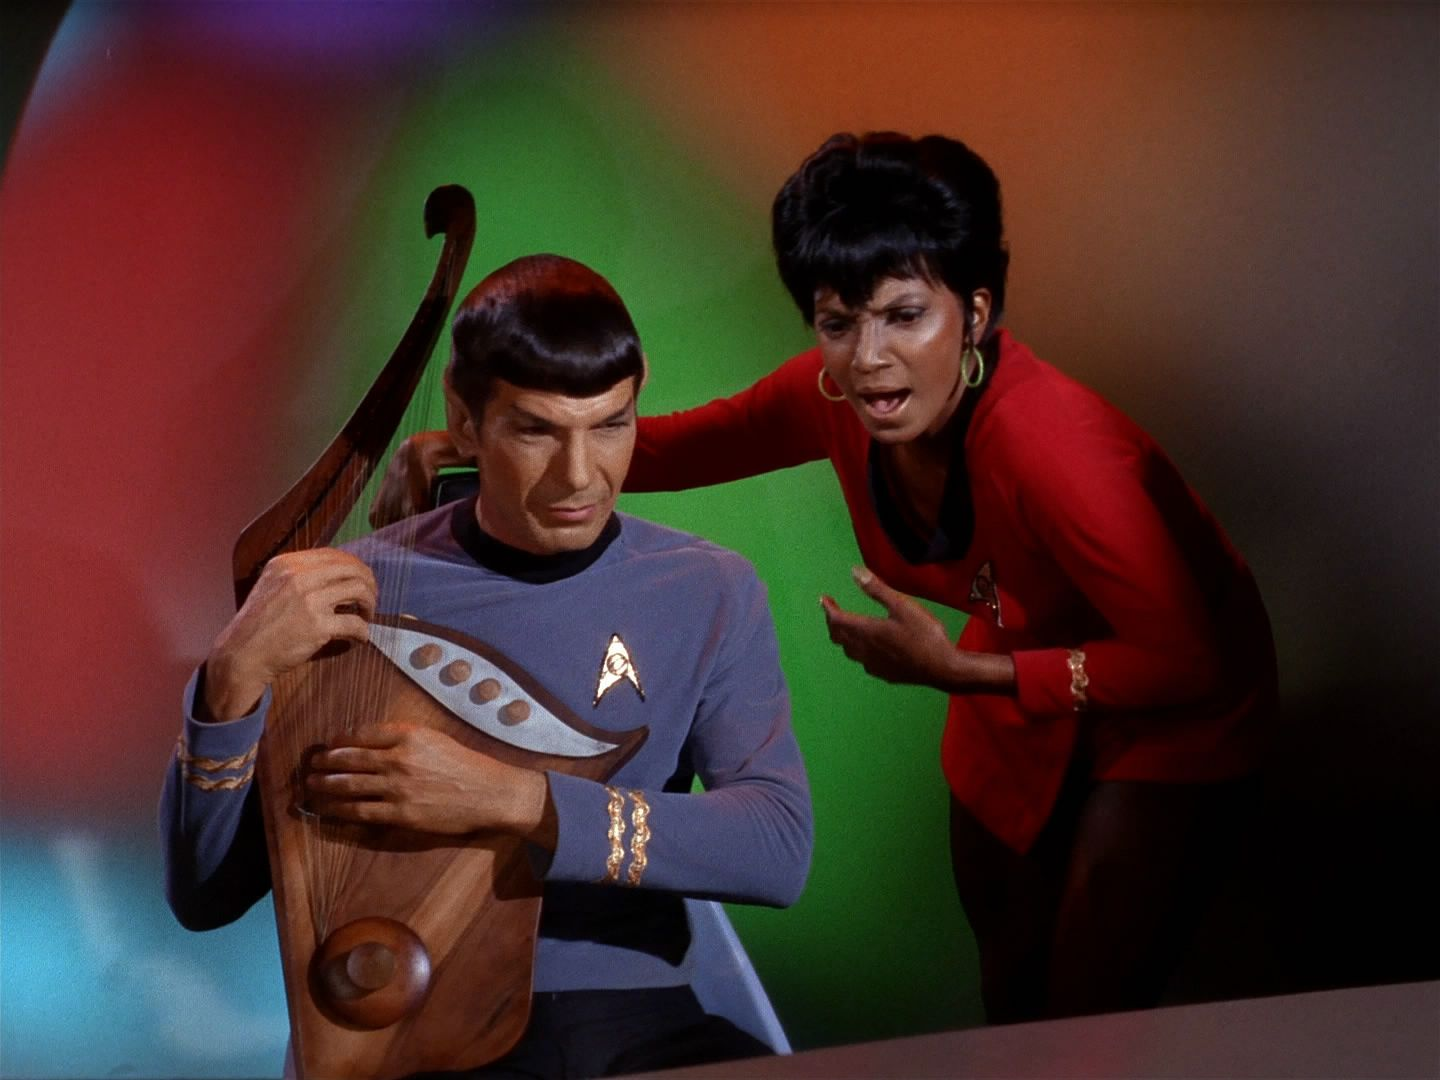 June 20, 20 Our Star Trek TOS re watch continues with Charlie X ...